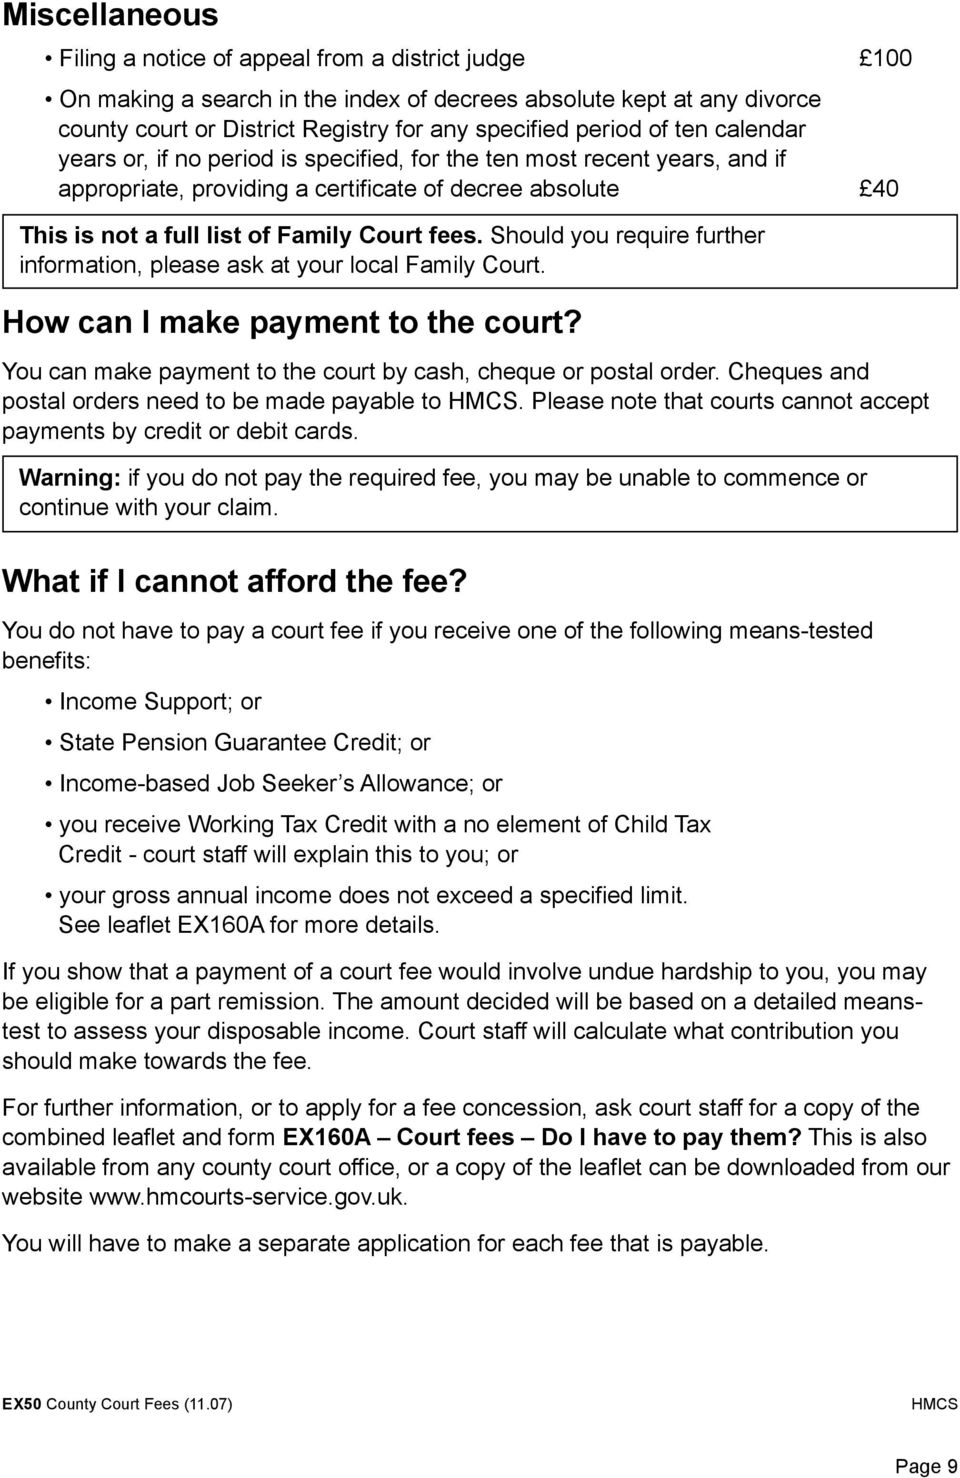 Should you require further information, please ask at your local Family Court. How can I make payment to the court? You can make payment to the court by cash, cheque or postal order.